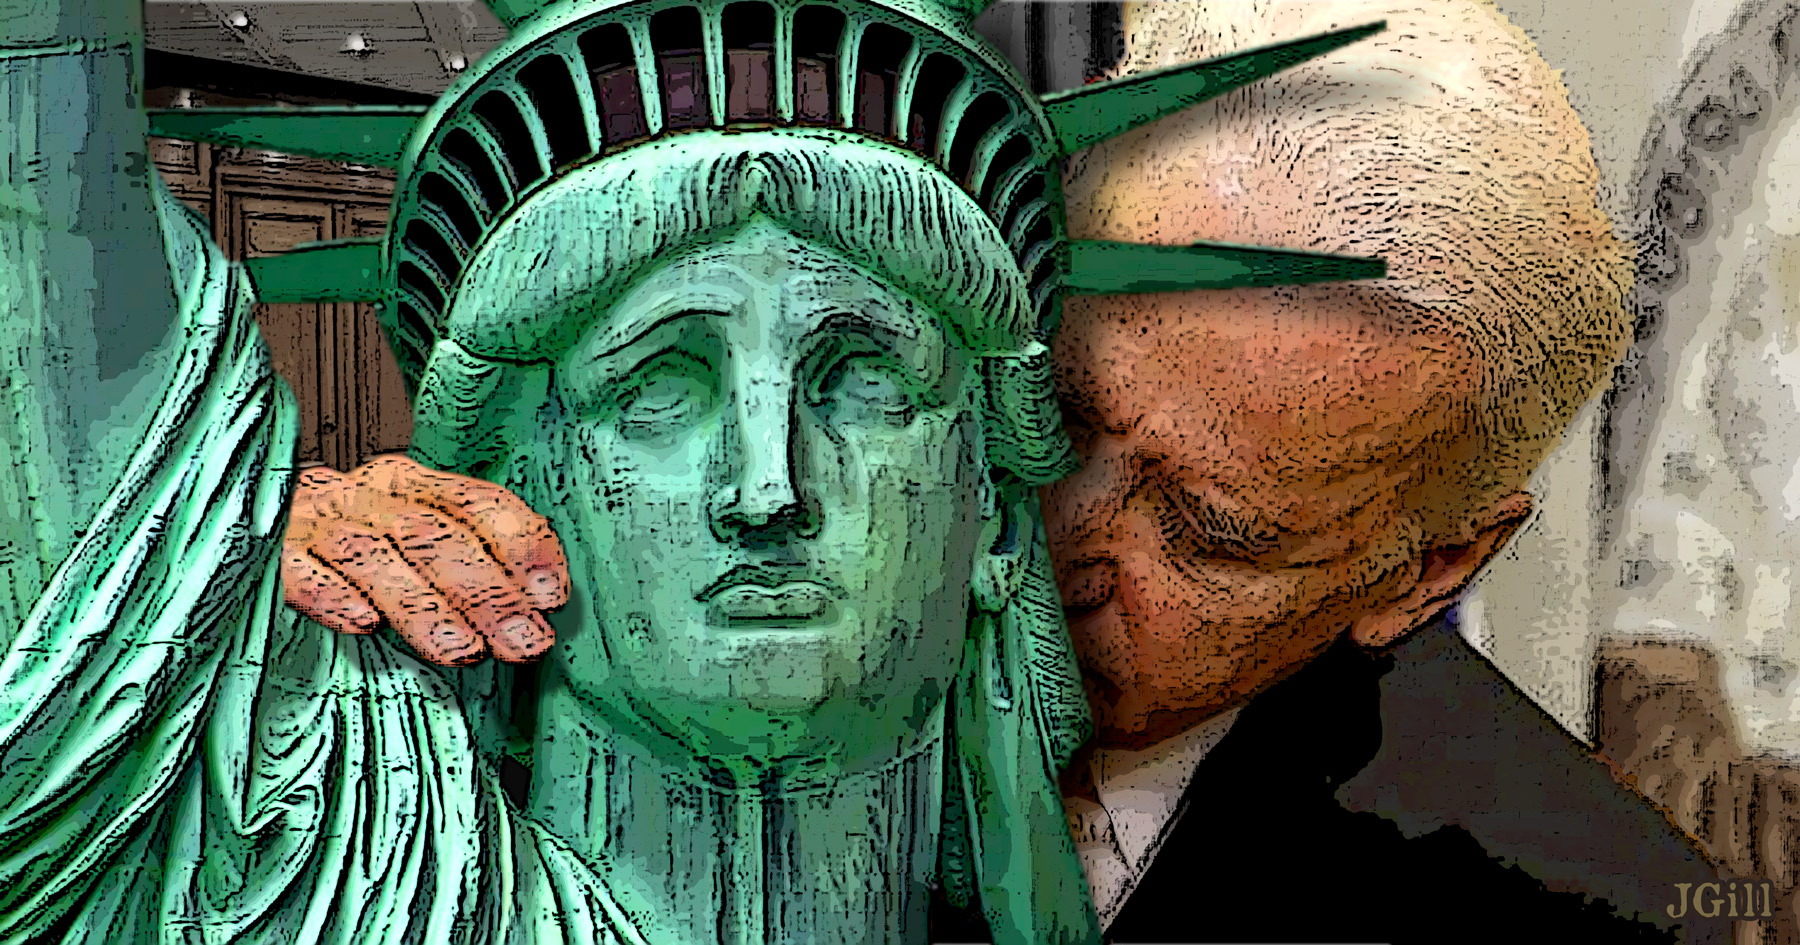 Joe Biden, president, election, nuzzle, statue of liberty, photomontage, collage, illustration, Jim Gill, Paul Jacob, Common Sense